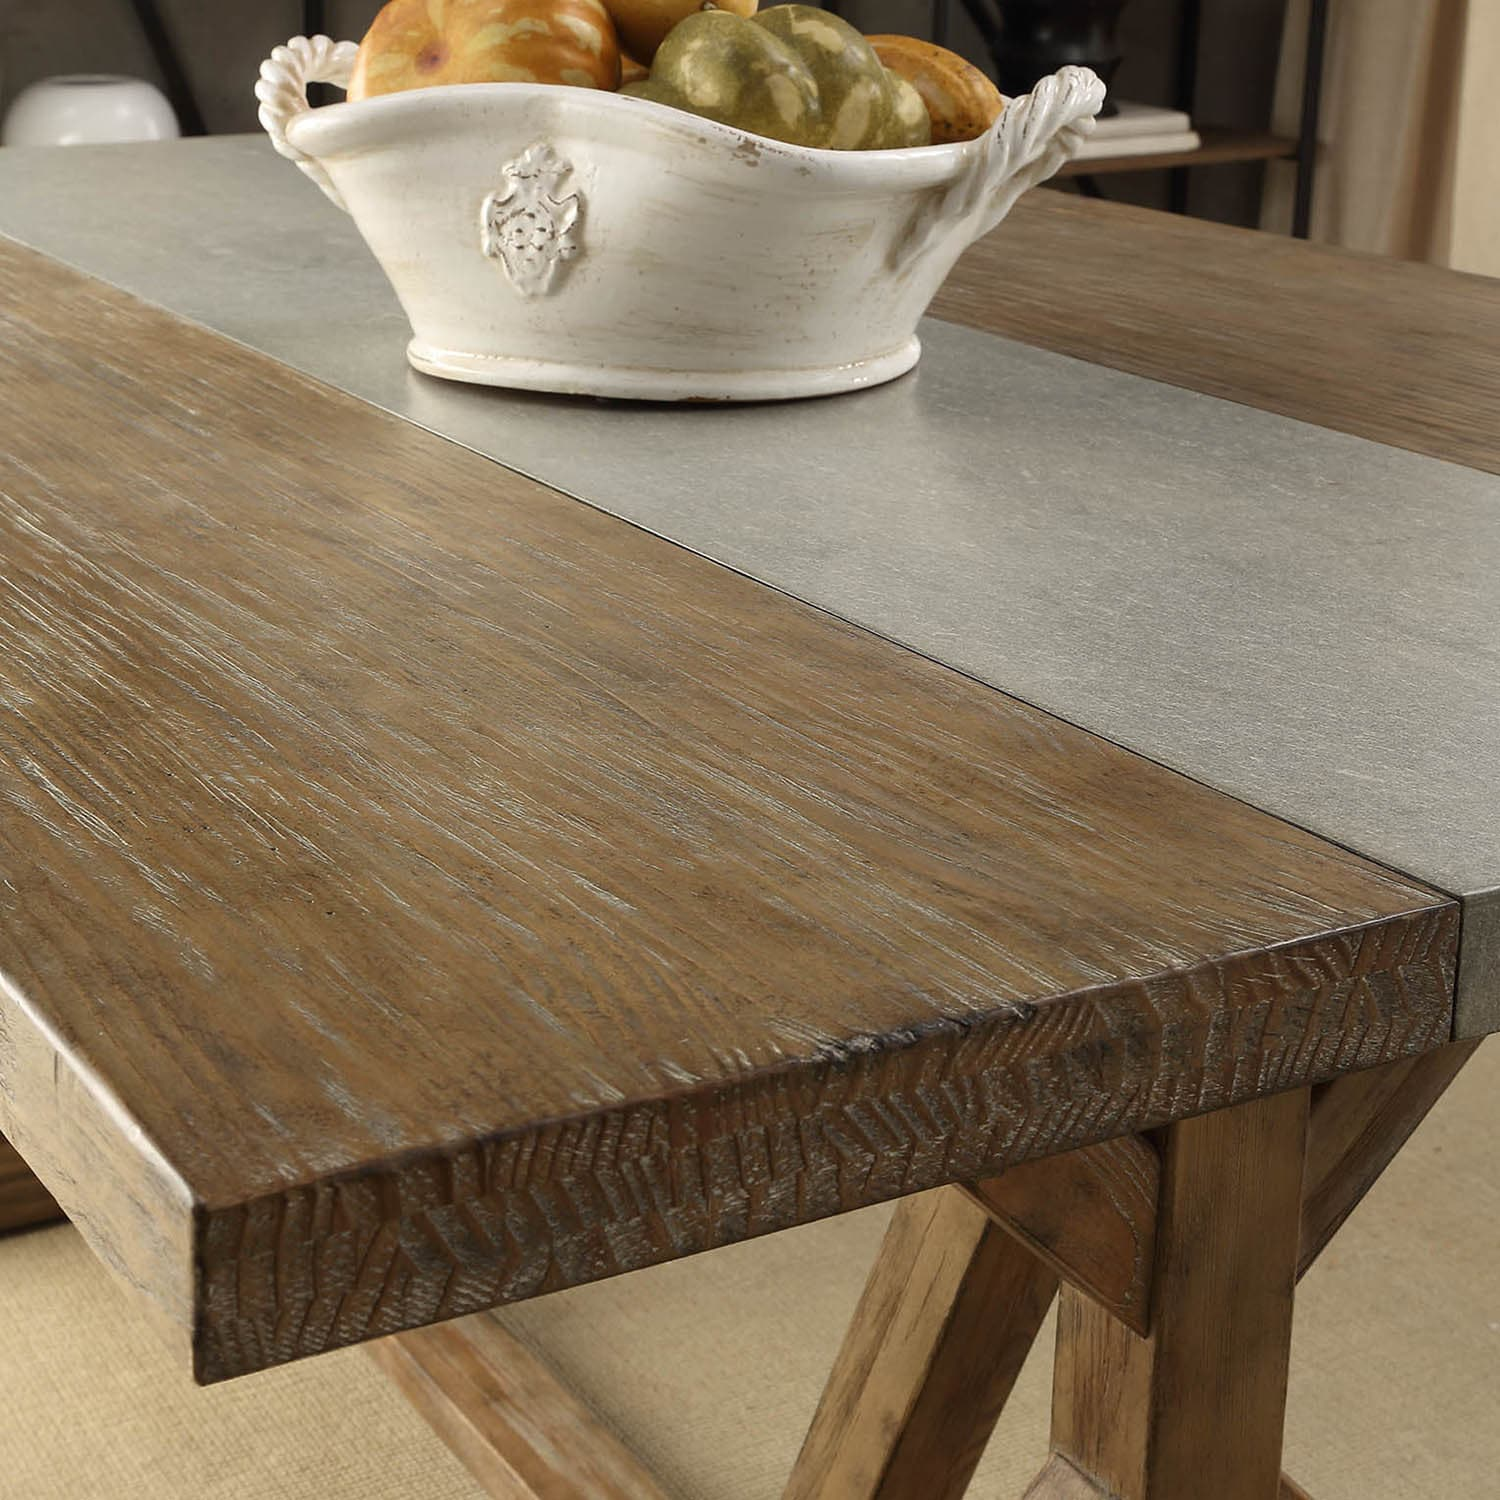 Benchwright Rustic Pine Trestle Concrete Inlaid wood 6-piece Dining Set by  iNSPIRE Q Artisan - Free Shipping Today - Overstock.com - 17207388